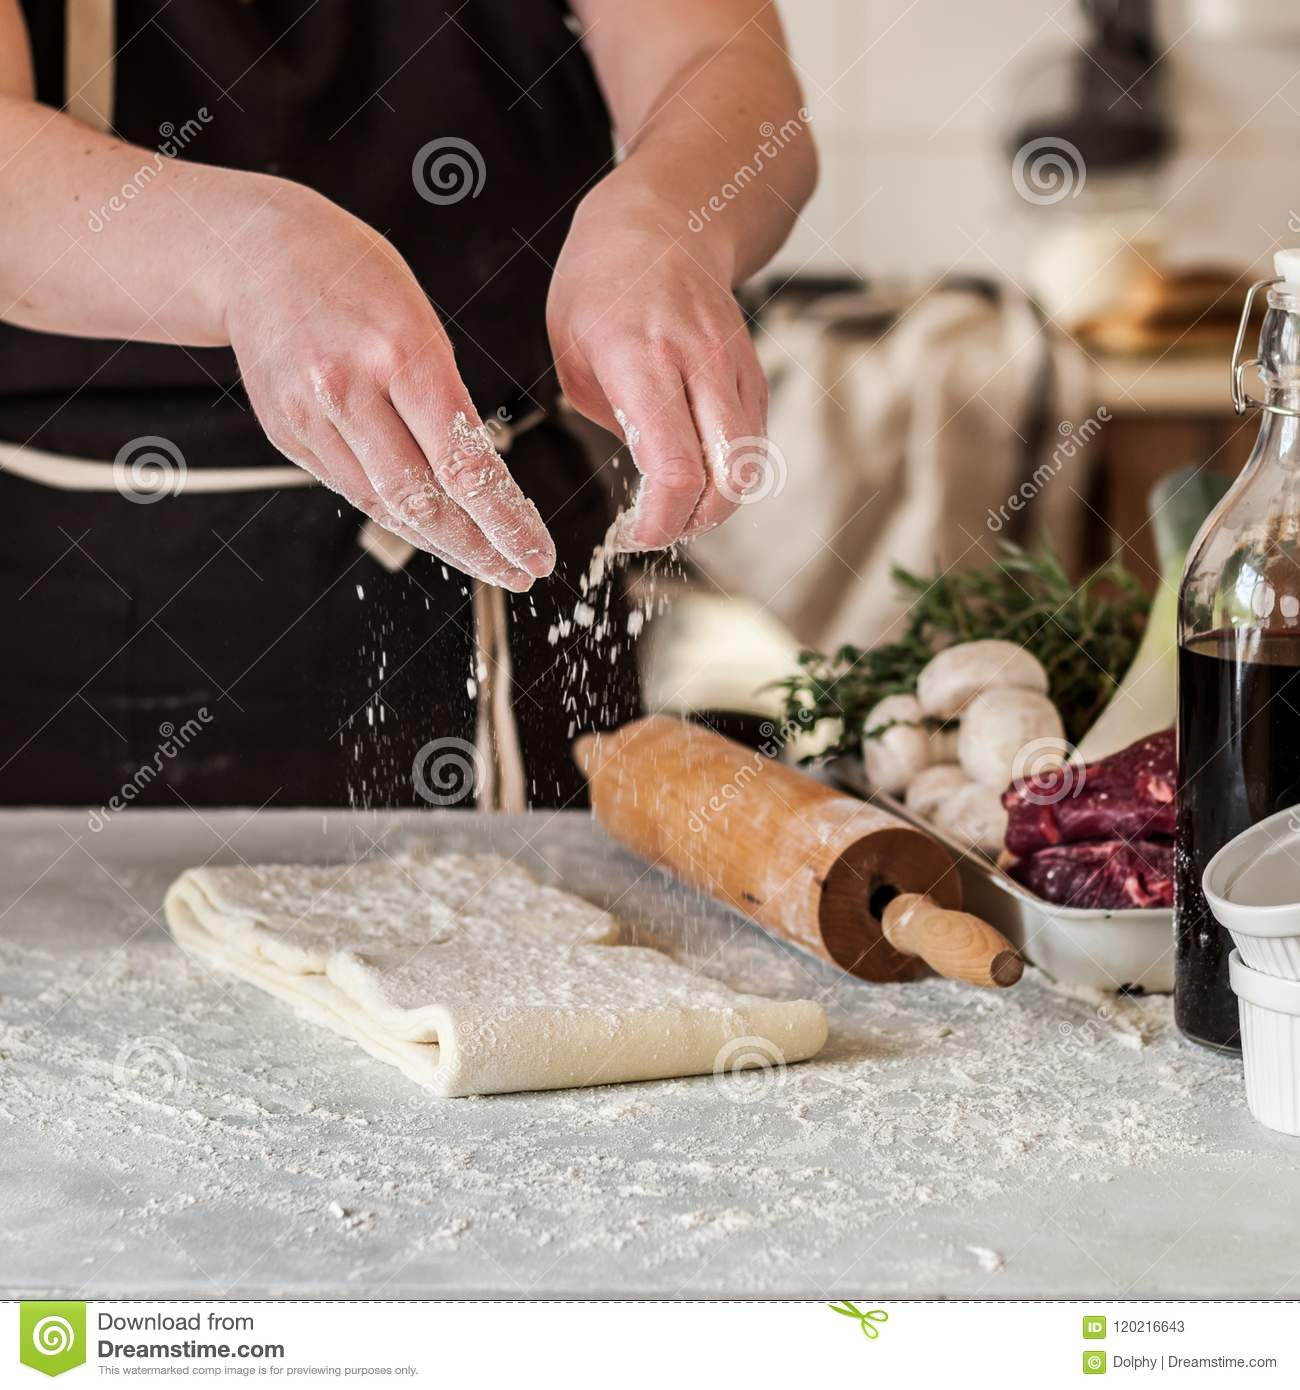 A Woman Making Puff Pastry Dough